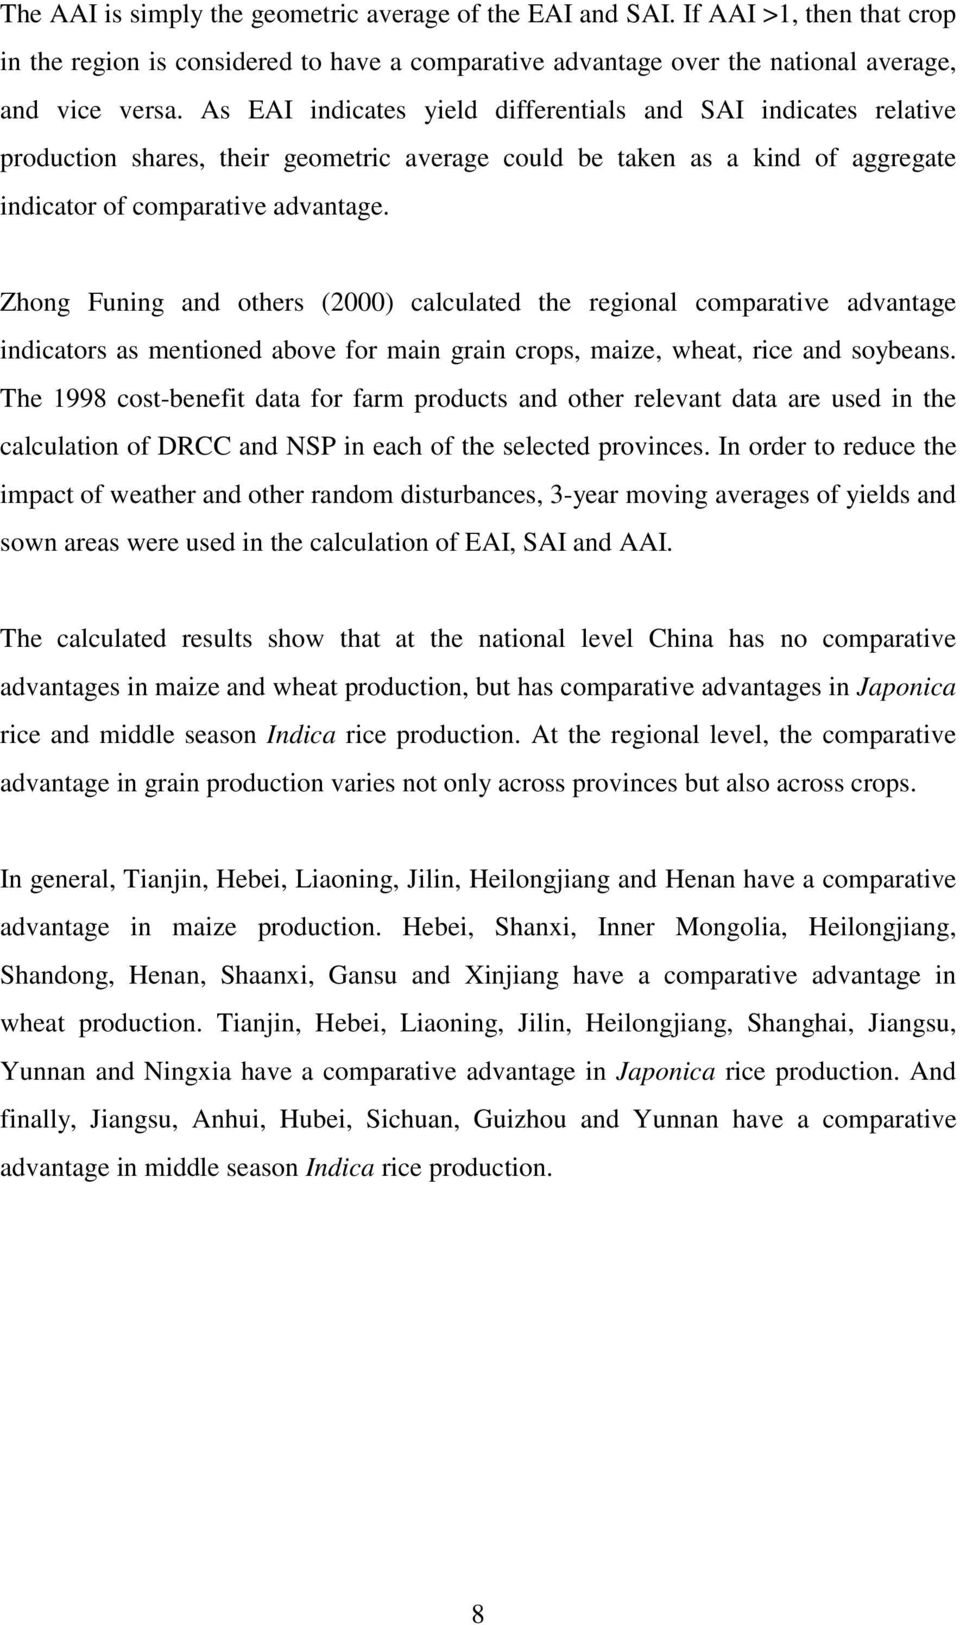 Zhong Funing and others (2000) calculated the regional comparative advantage indicators as mentioned above for main grain crops, maize, wheat, rice and soybeans.